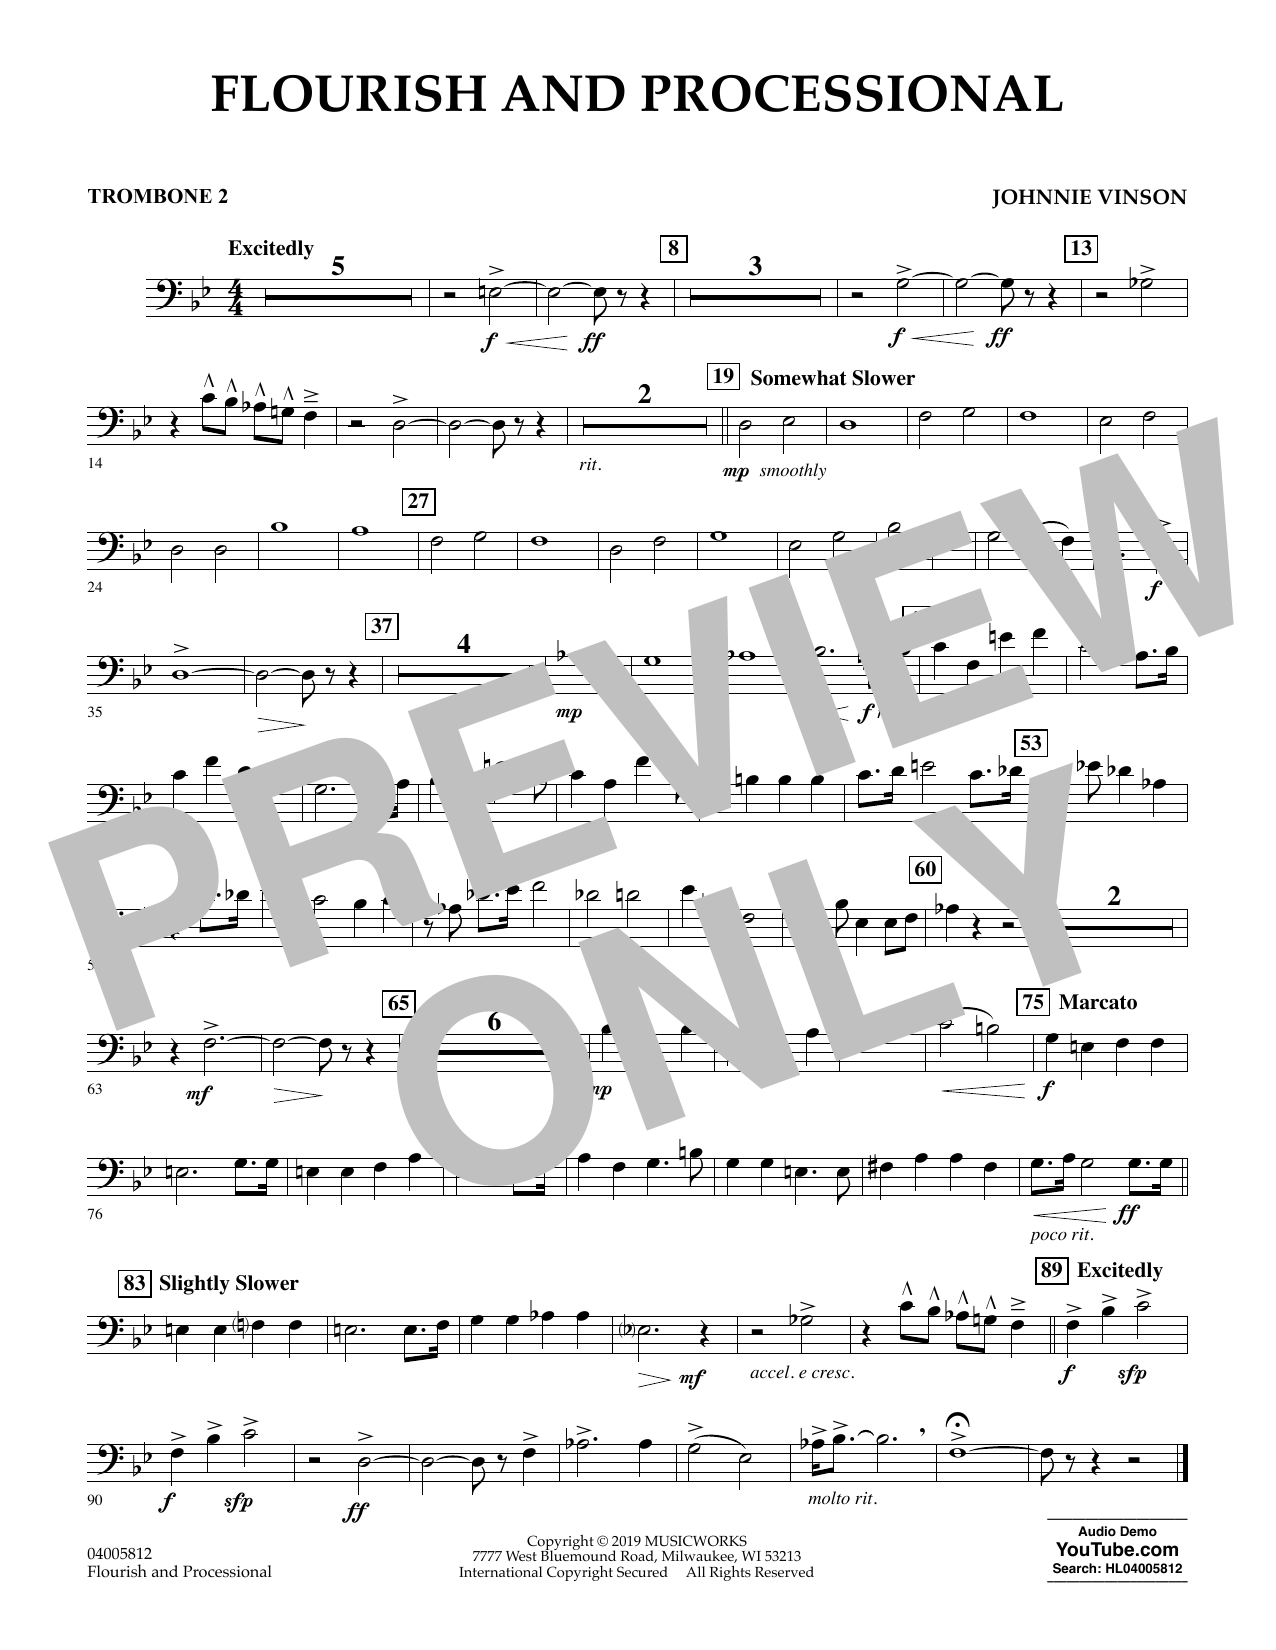 Johnnie Vinson Flourish and Processional - Trombone 2 sheet music preview music notes and score for Concert Band including 1 page(s)